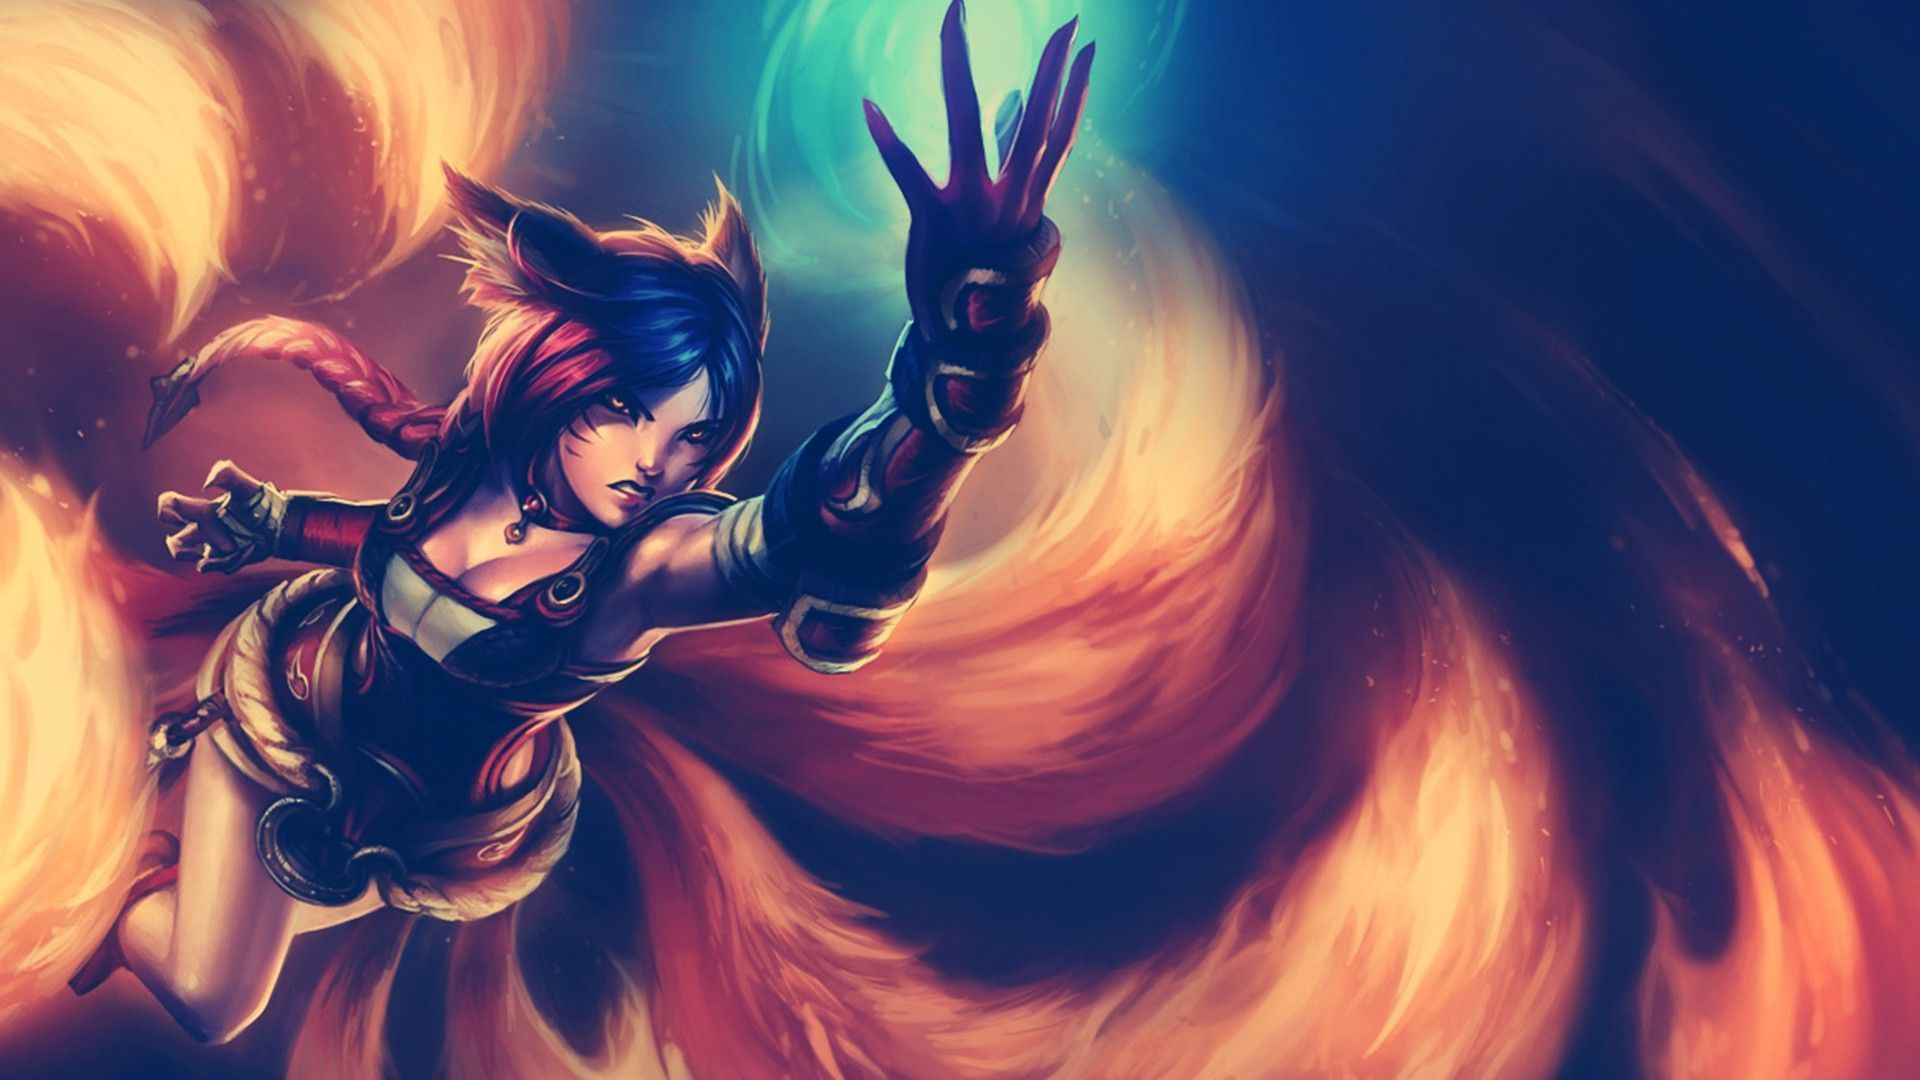 Ahri Background Hd Ahri Lol Wallpaper Hd 1194997 Hd